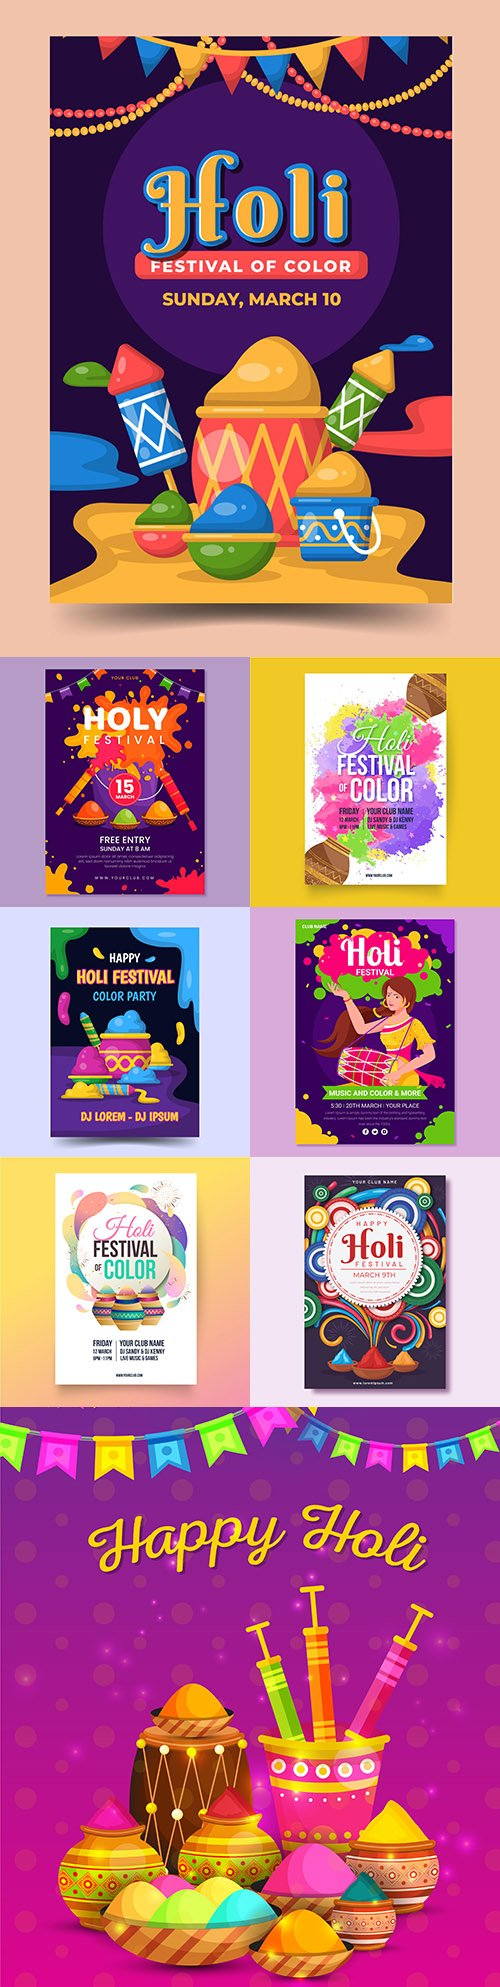 Happy Holi festival bright design poster template